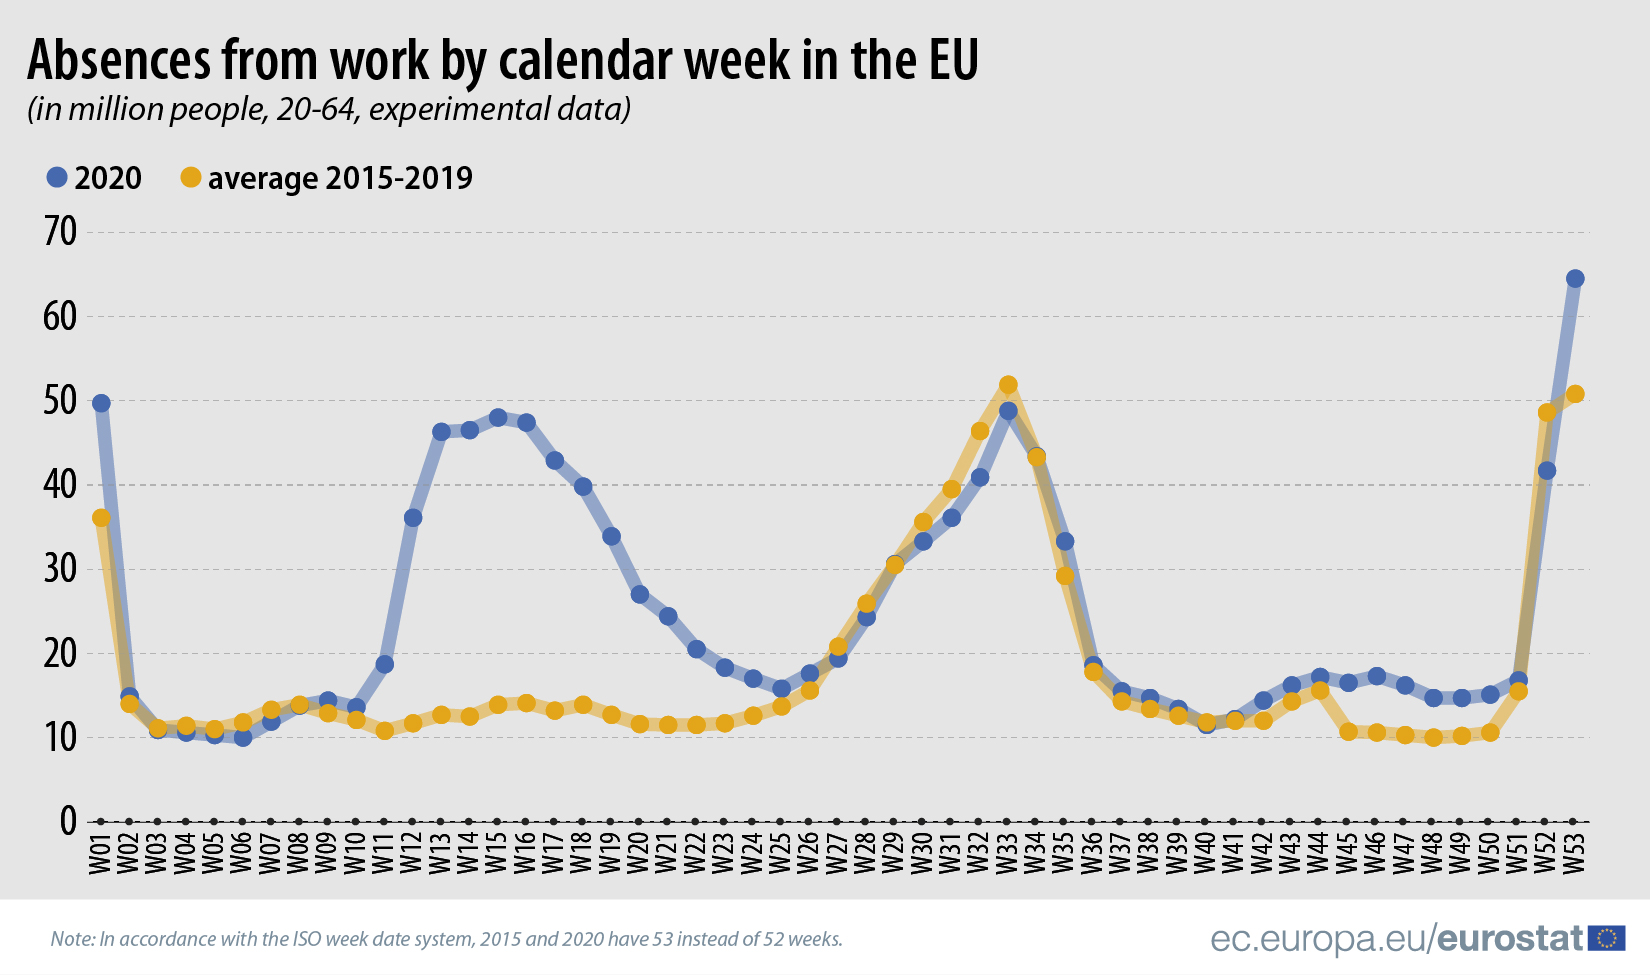 Absences from work by calendar week, 2020 and average 2015-2019